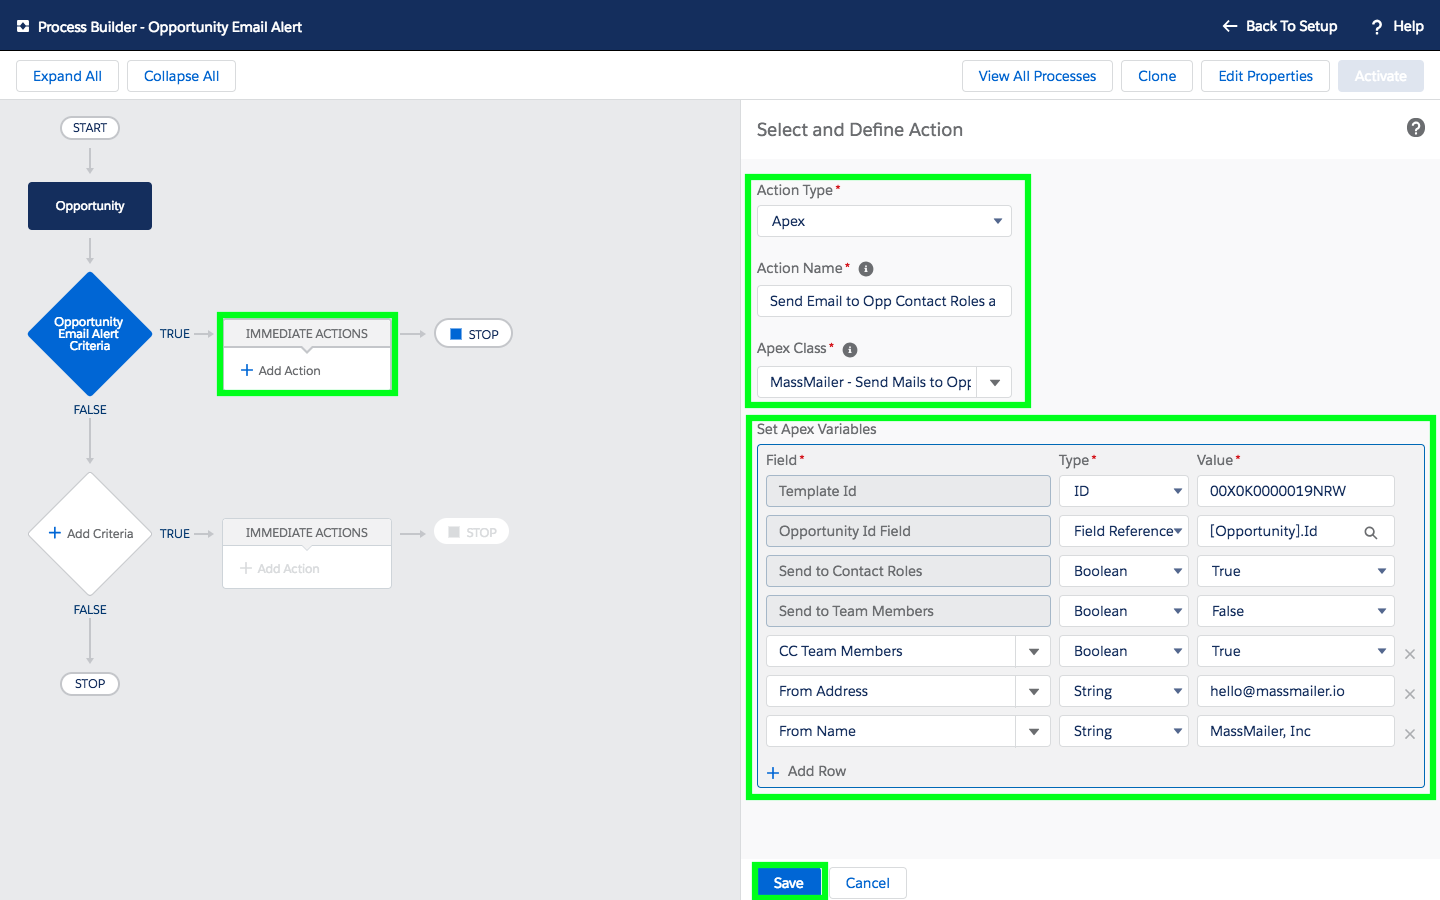 How to Send and Track Workflow Email Alerts to Opportunity